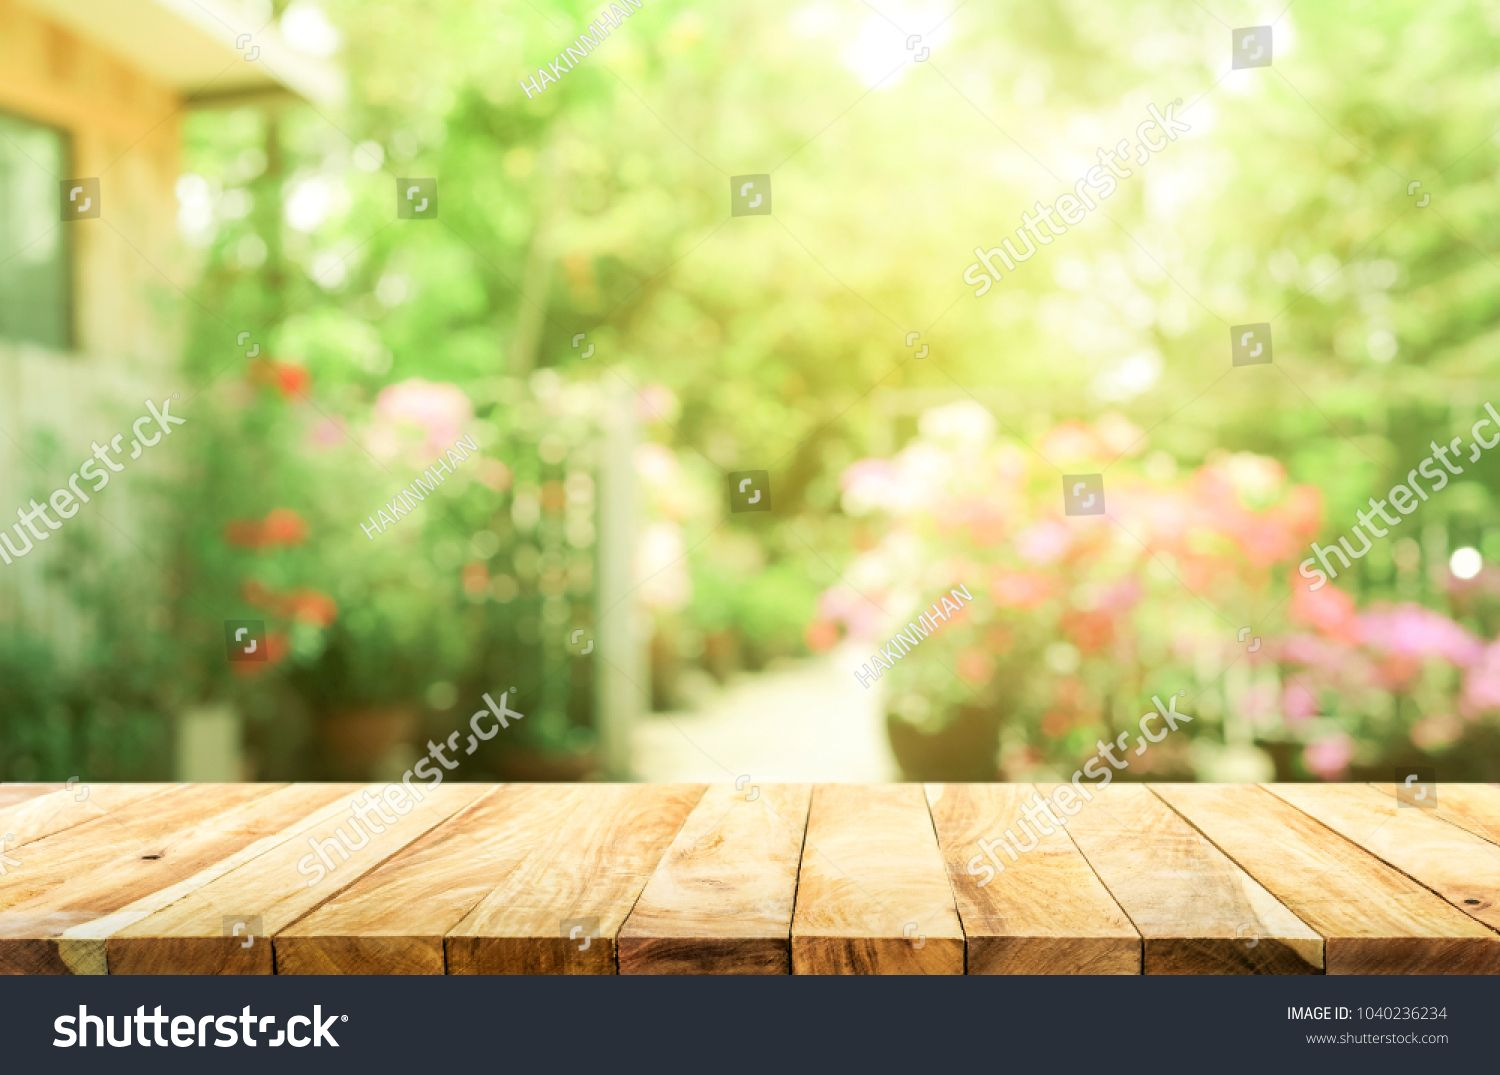 Empty Wood Table Top On Blur Abstract Green From Garden And House Background For Montage Product Display Top Blur Abstract Wood Table Top Wood Table Table Top